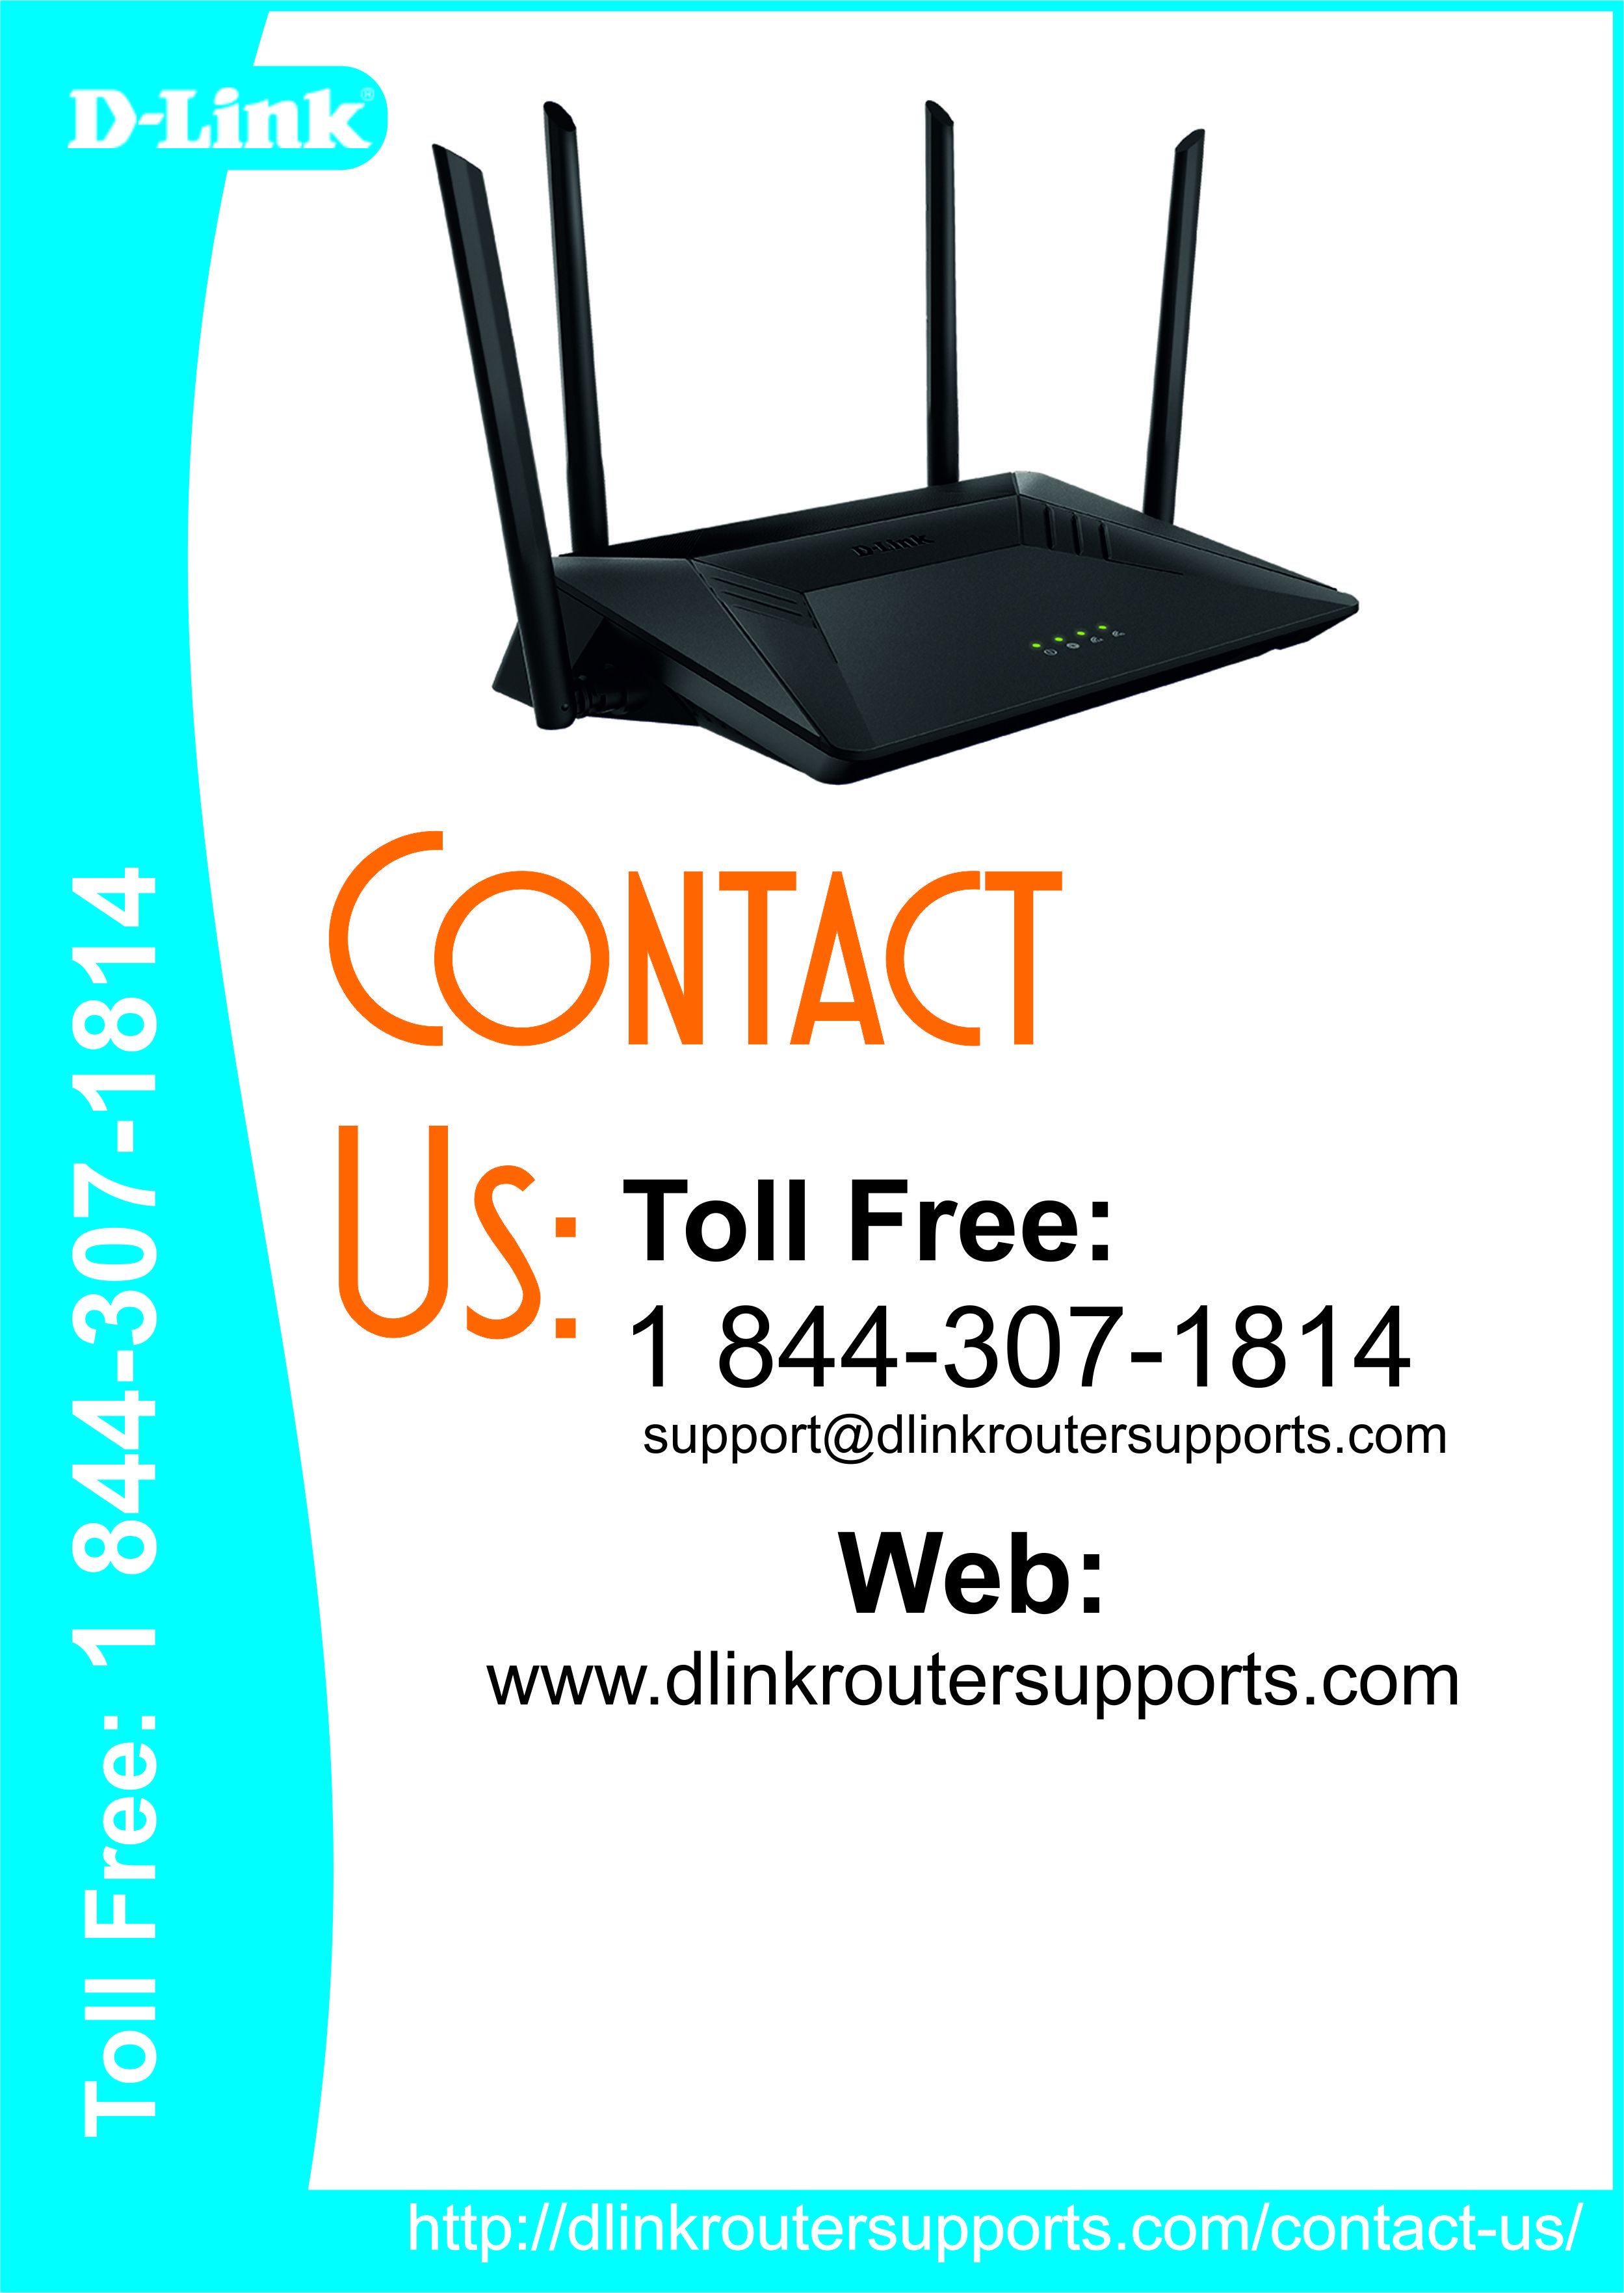 DLink Router Customer Care Services Canada Contact us